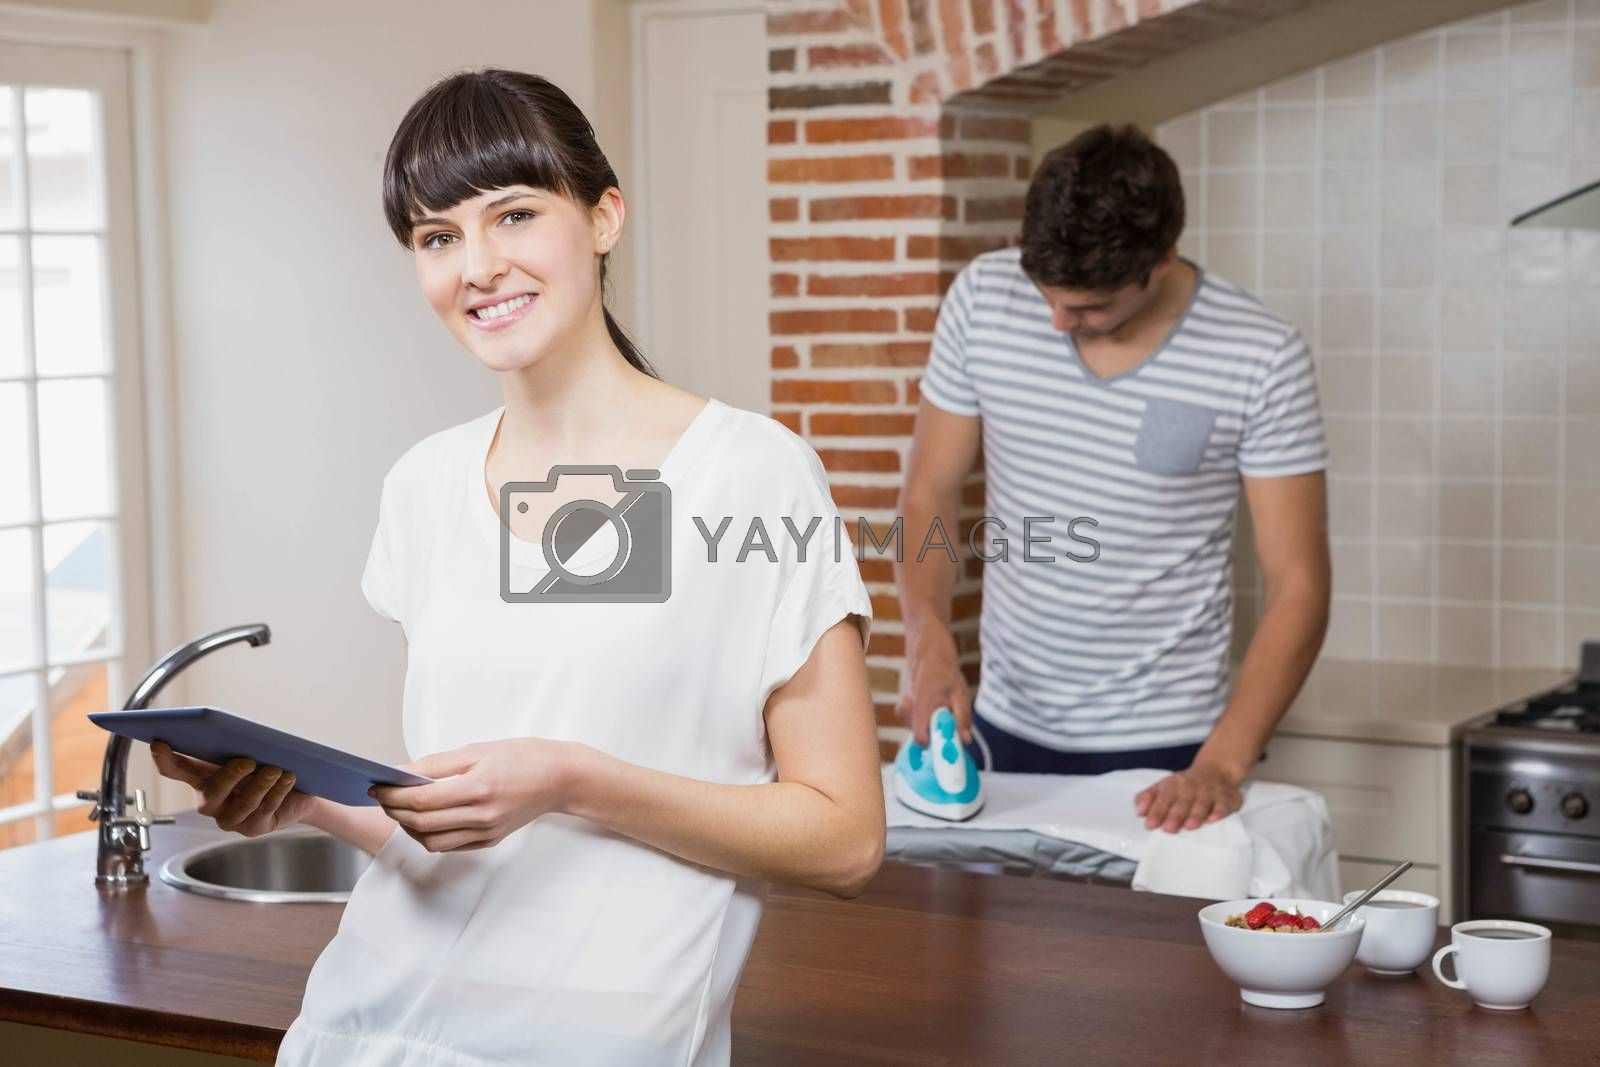 Woman using tablet in kitchen while man ironing a shirt in background